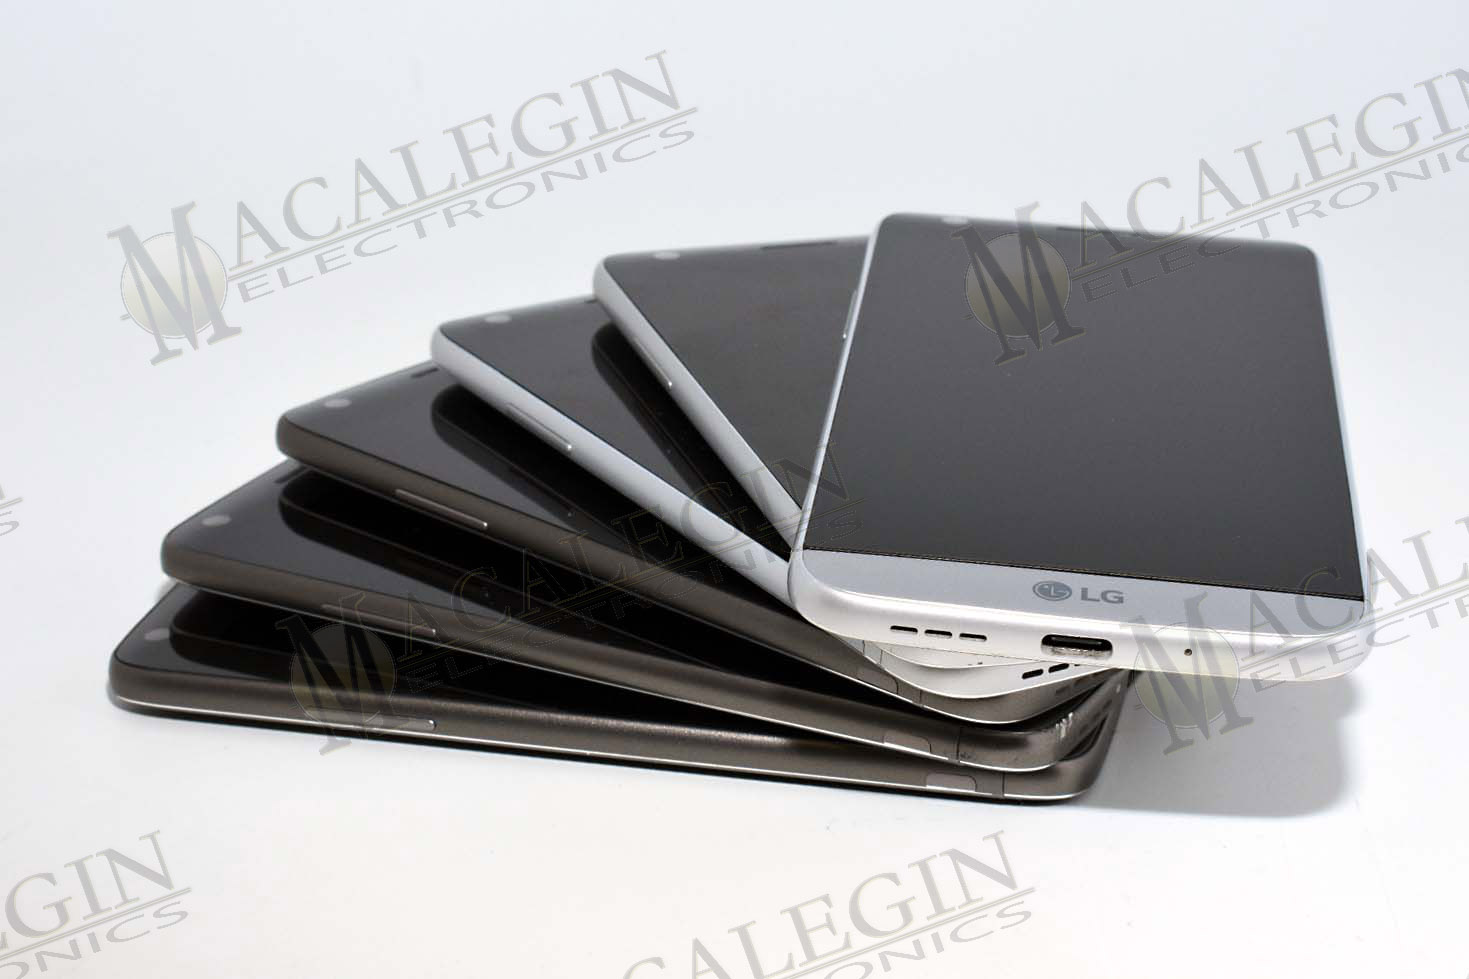 Used LG H830 G5 T-MOBILE in PGL condition for sale from Macalegin Electronics at $55 a piece.